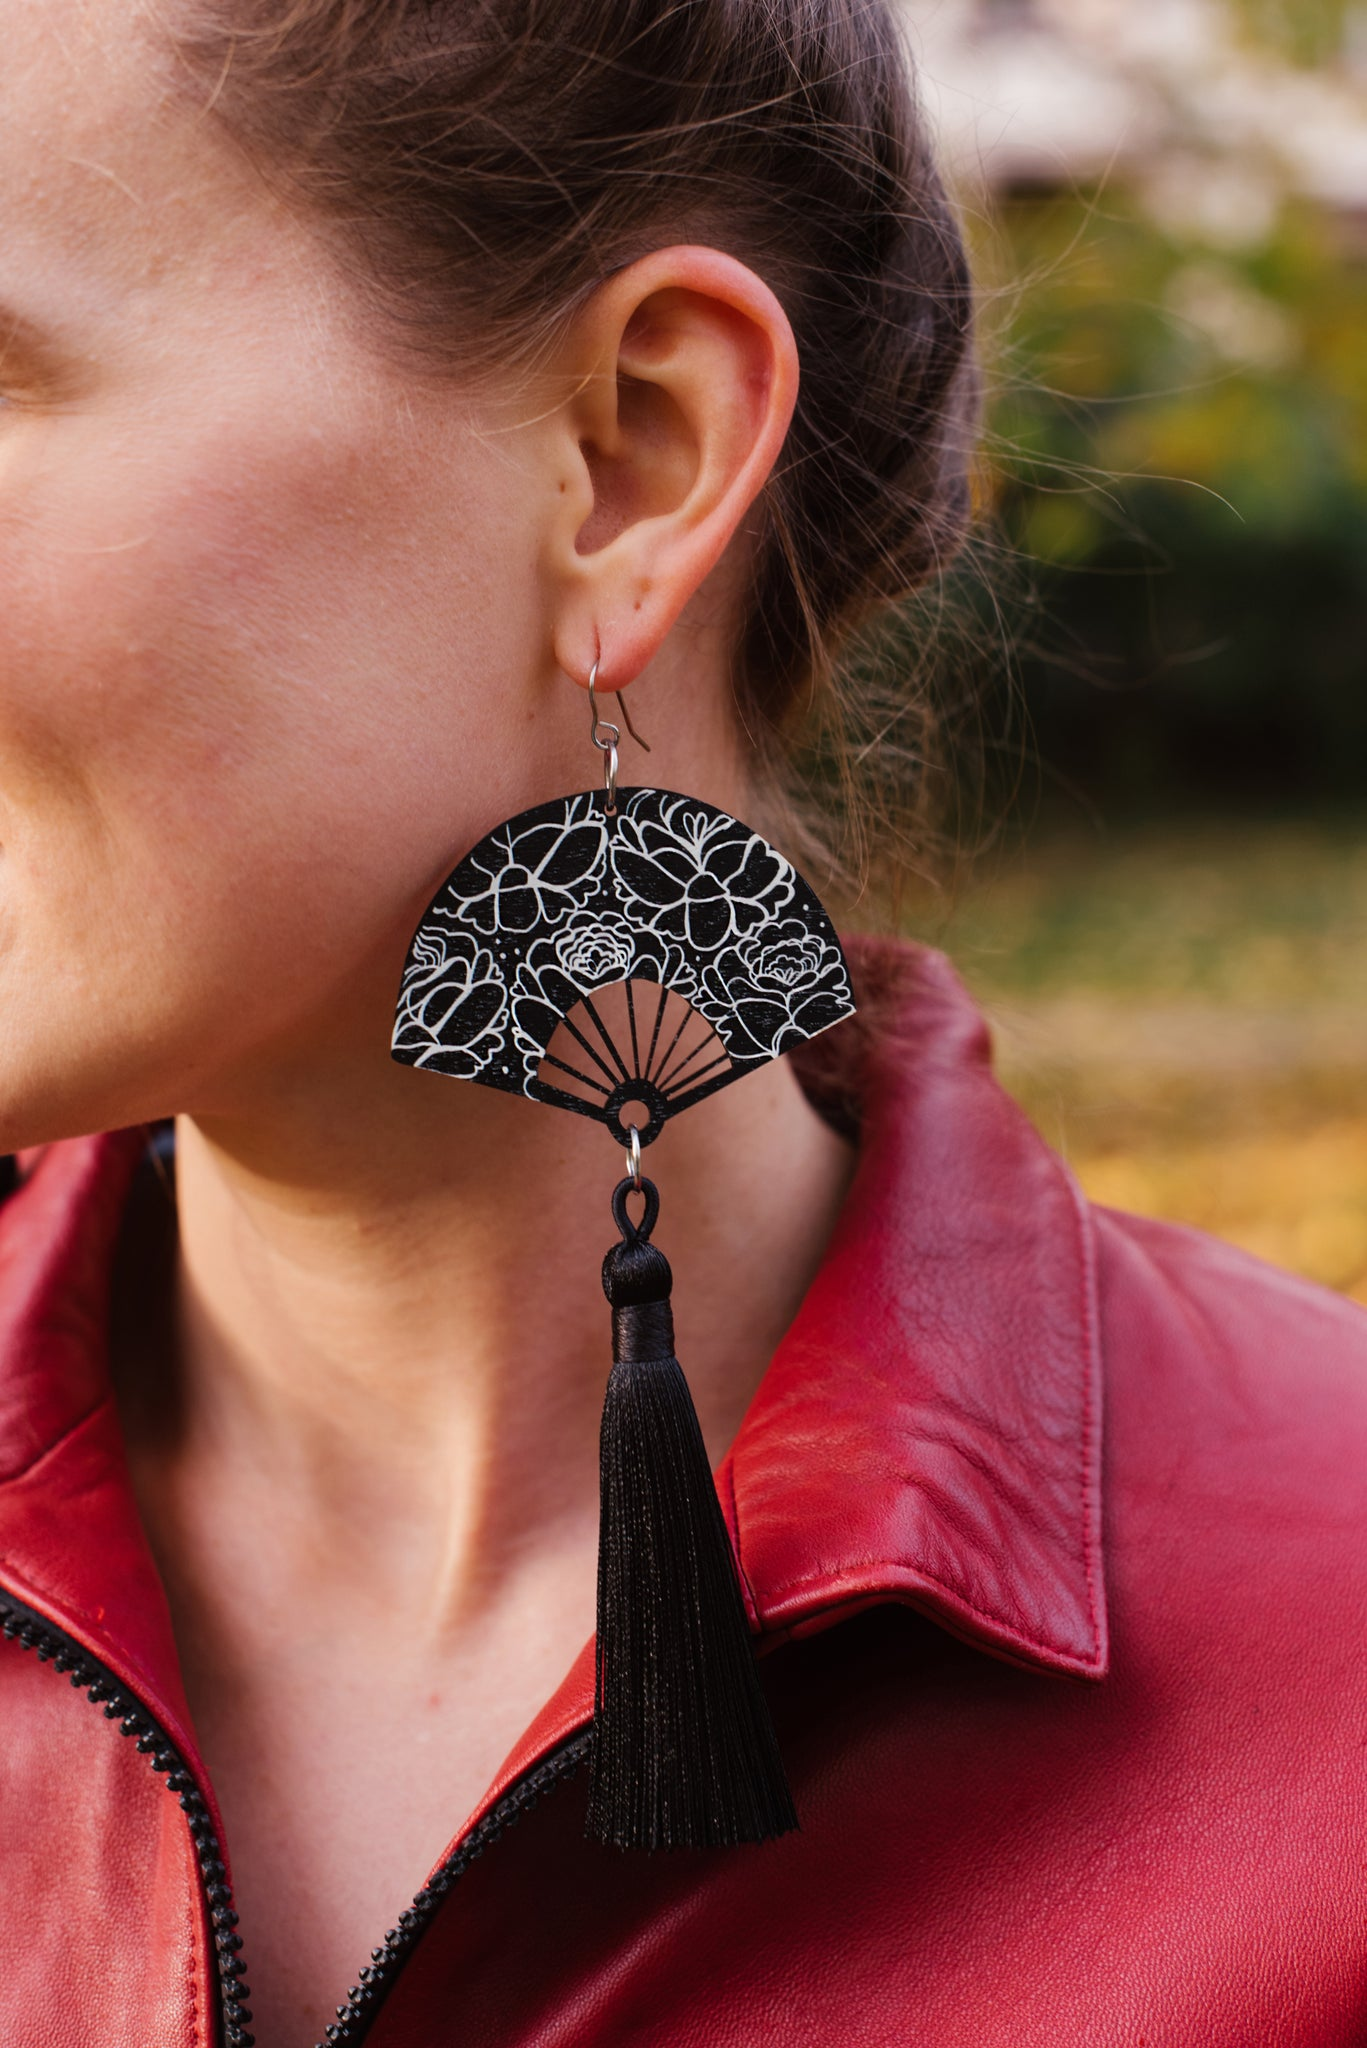 Flo Tassel Earrings Black Roses Bloom, Wood